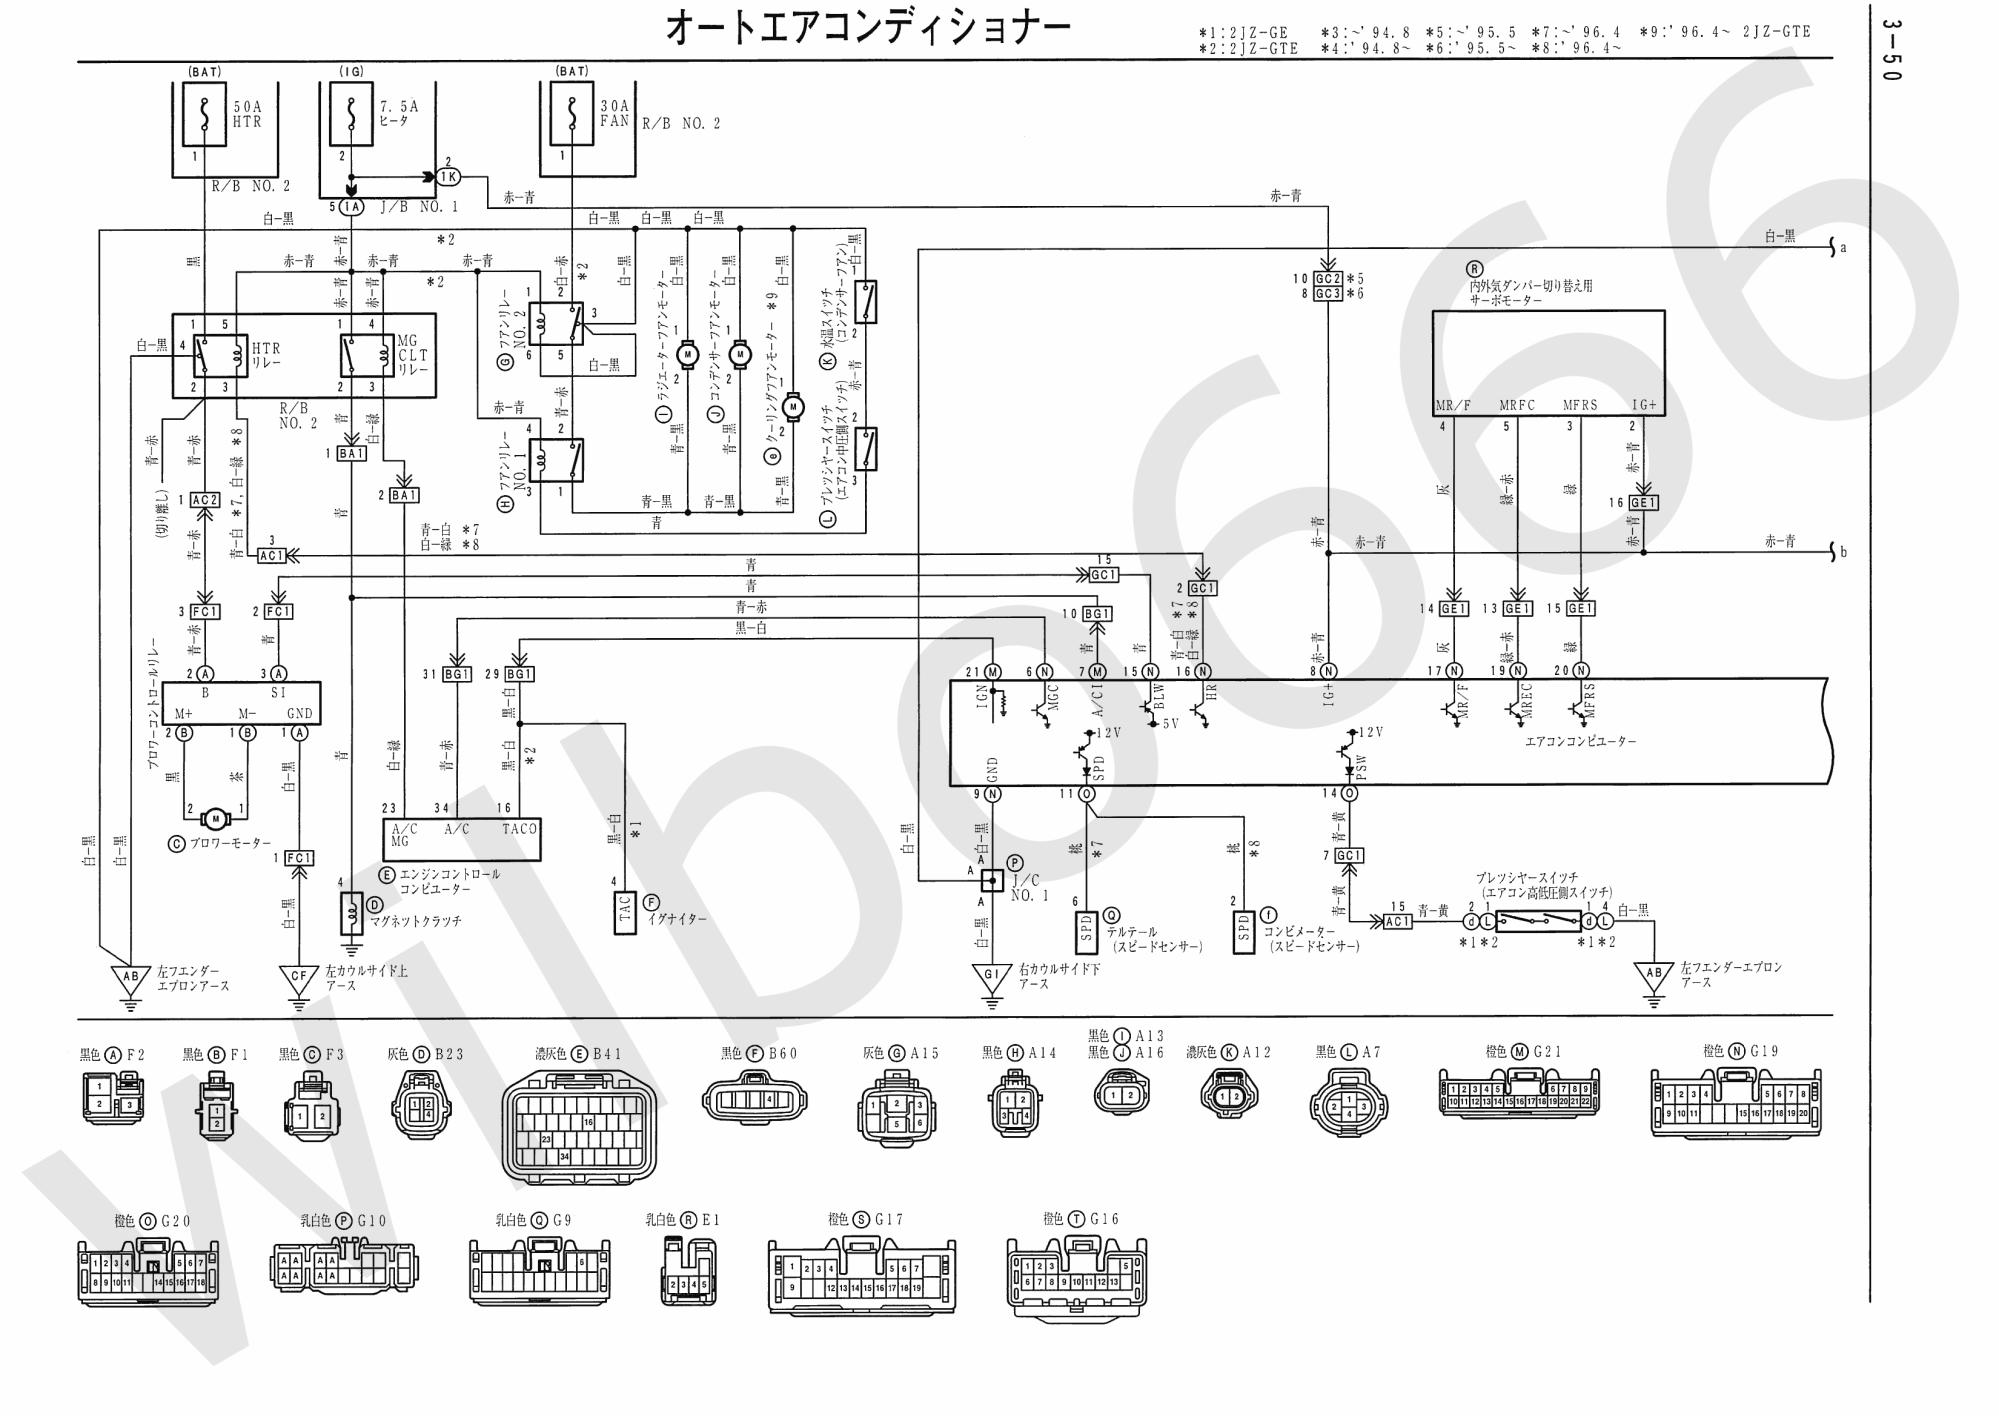 hight resolution of 91 mr2 wire loom diagram wiring diagram load 91 mr2 wire loom diagram